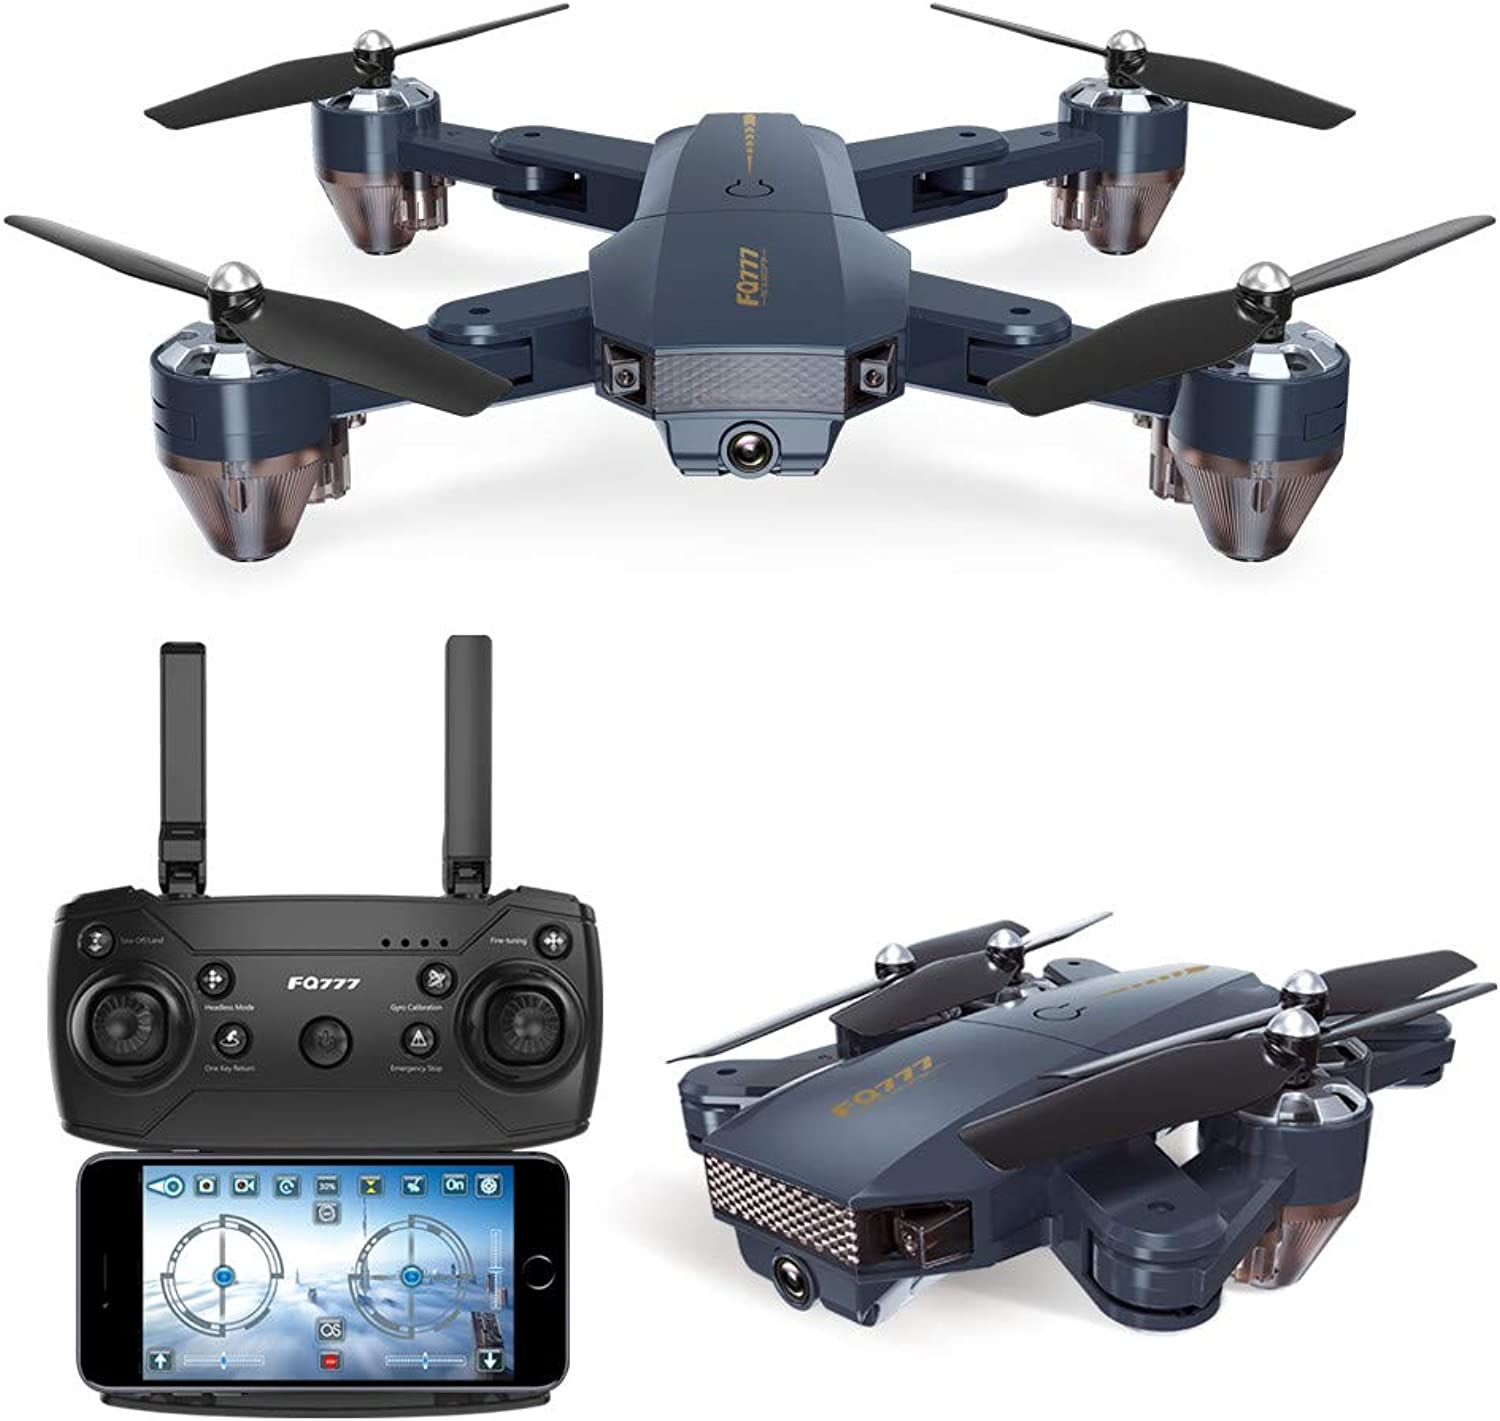 IGEMY FQ777 FQ35 2.4G RC 720P WIFI FPV HD Camera Foldable RC Quadcopter Drone Hover,360 Degree Flips (black)